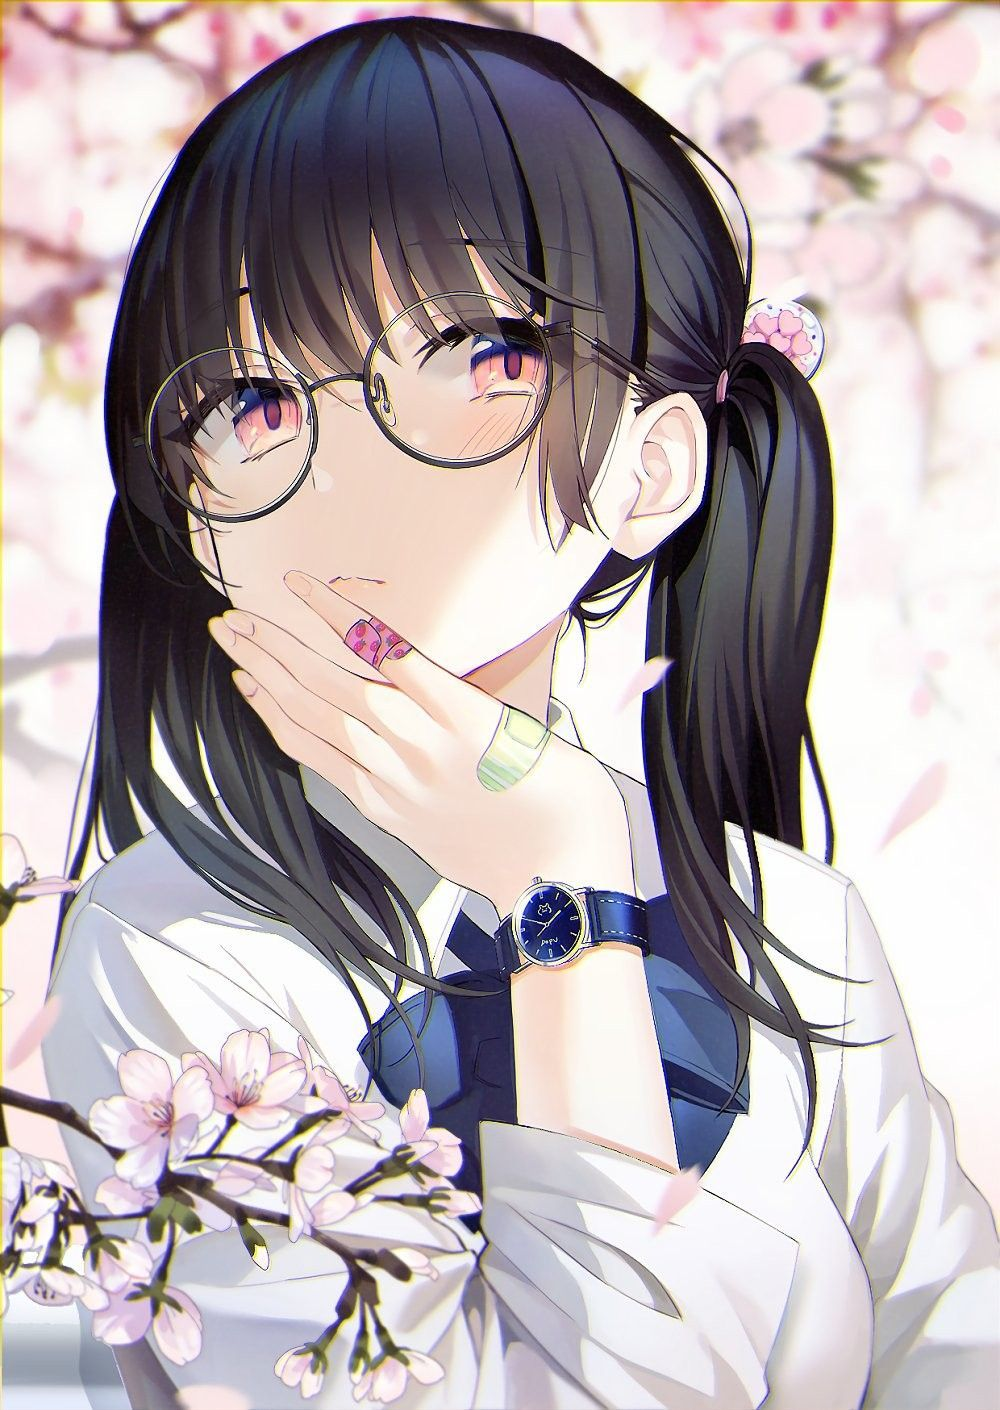 77 Anime Android Wallpapers On Wallpaperplay Android Wallpaper Anime Anime Wallpaper Cute Anime Wallpaper